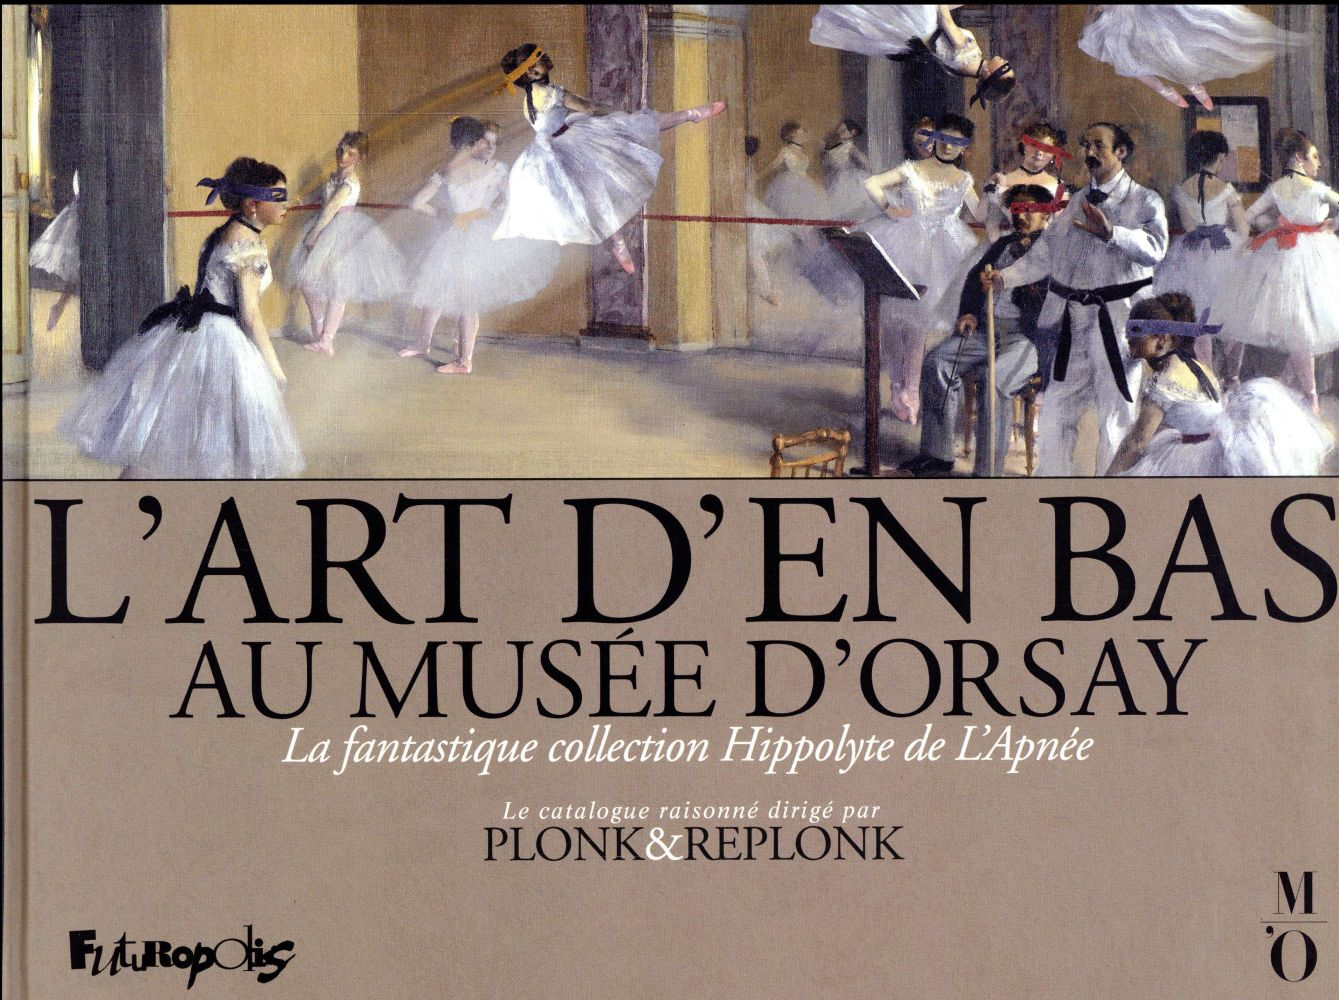 L'ART D'EN BAS AU MUSEE D'ORSAY - LA FANTASTIQUE COLLECTION HIPPOLYTE DE L'APNEE